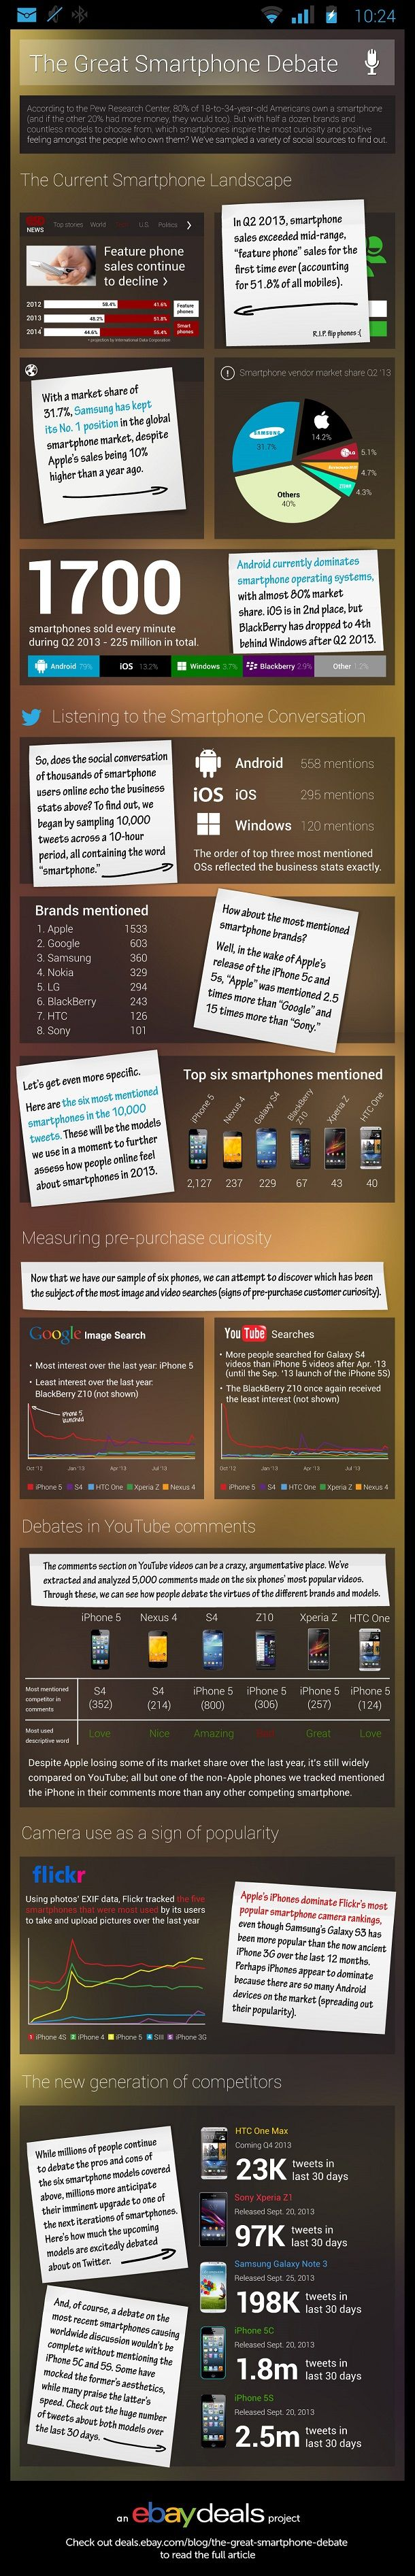 The Great Smartphone Debate #infographic #mobile #smartphone